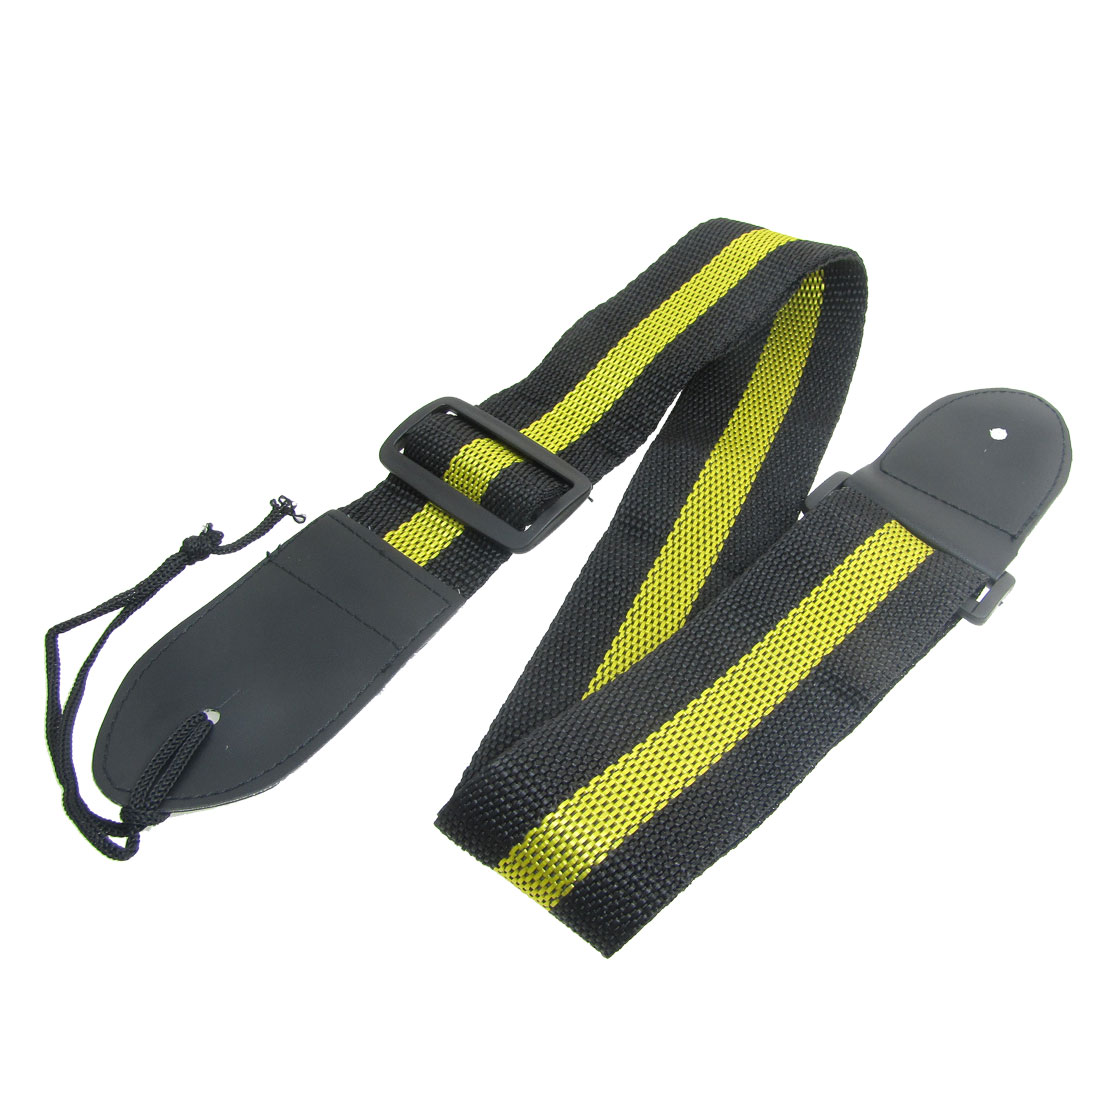 Plastic Slide Buckle Black Yellow Guitar Shoulder Strap